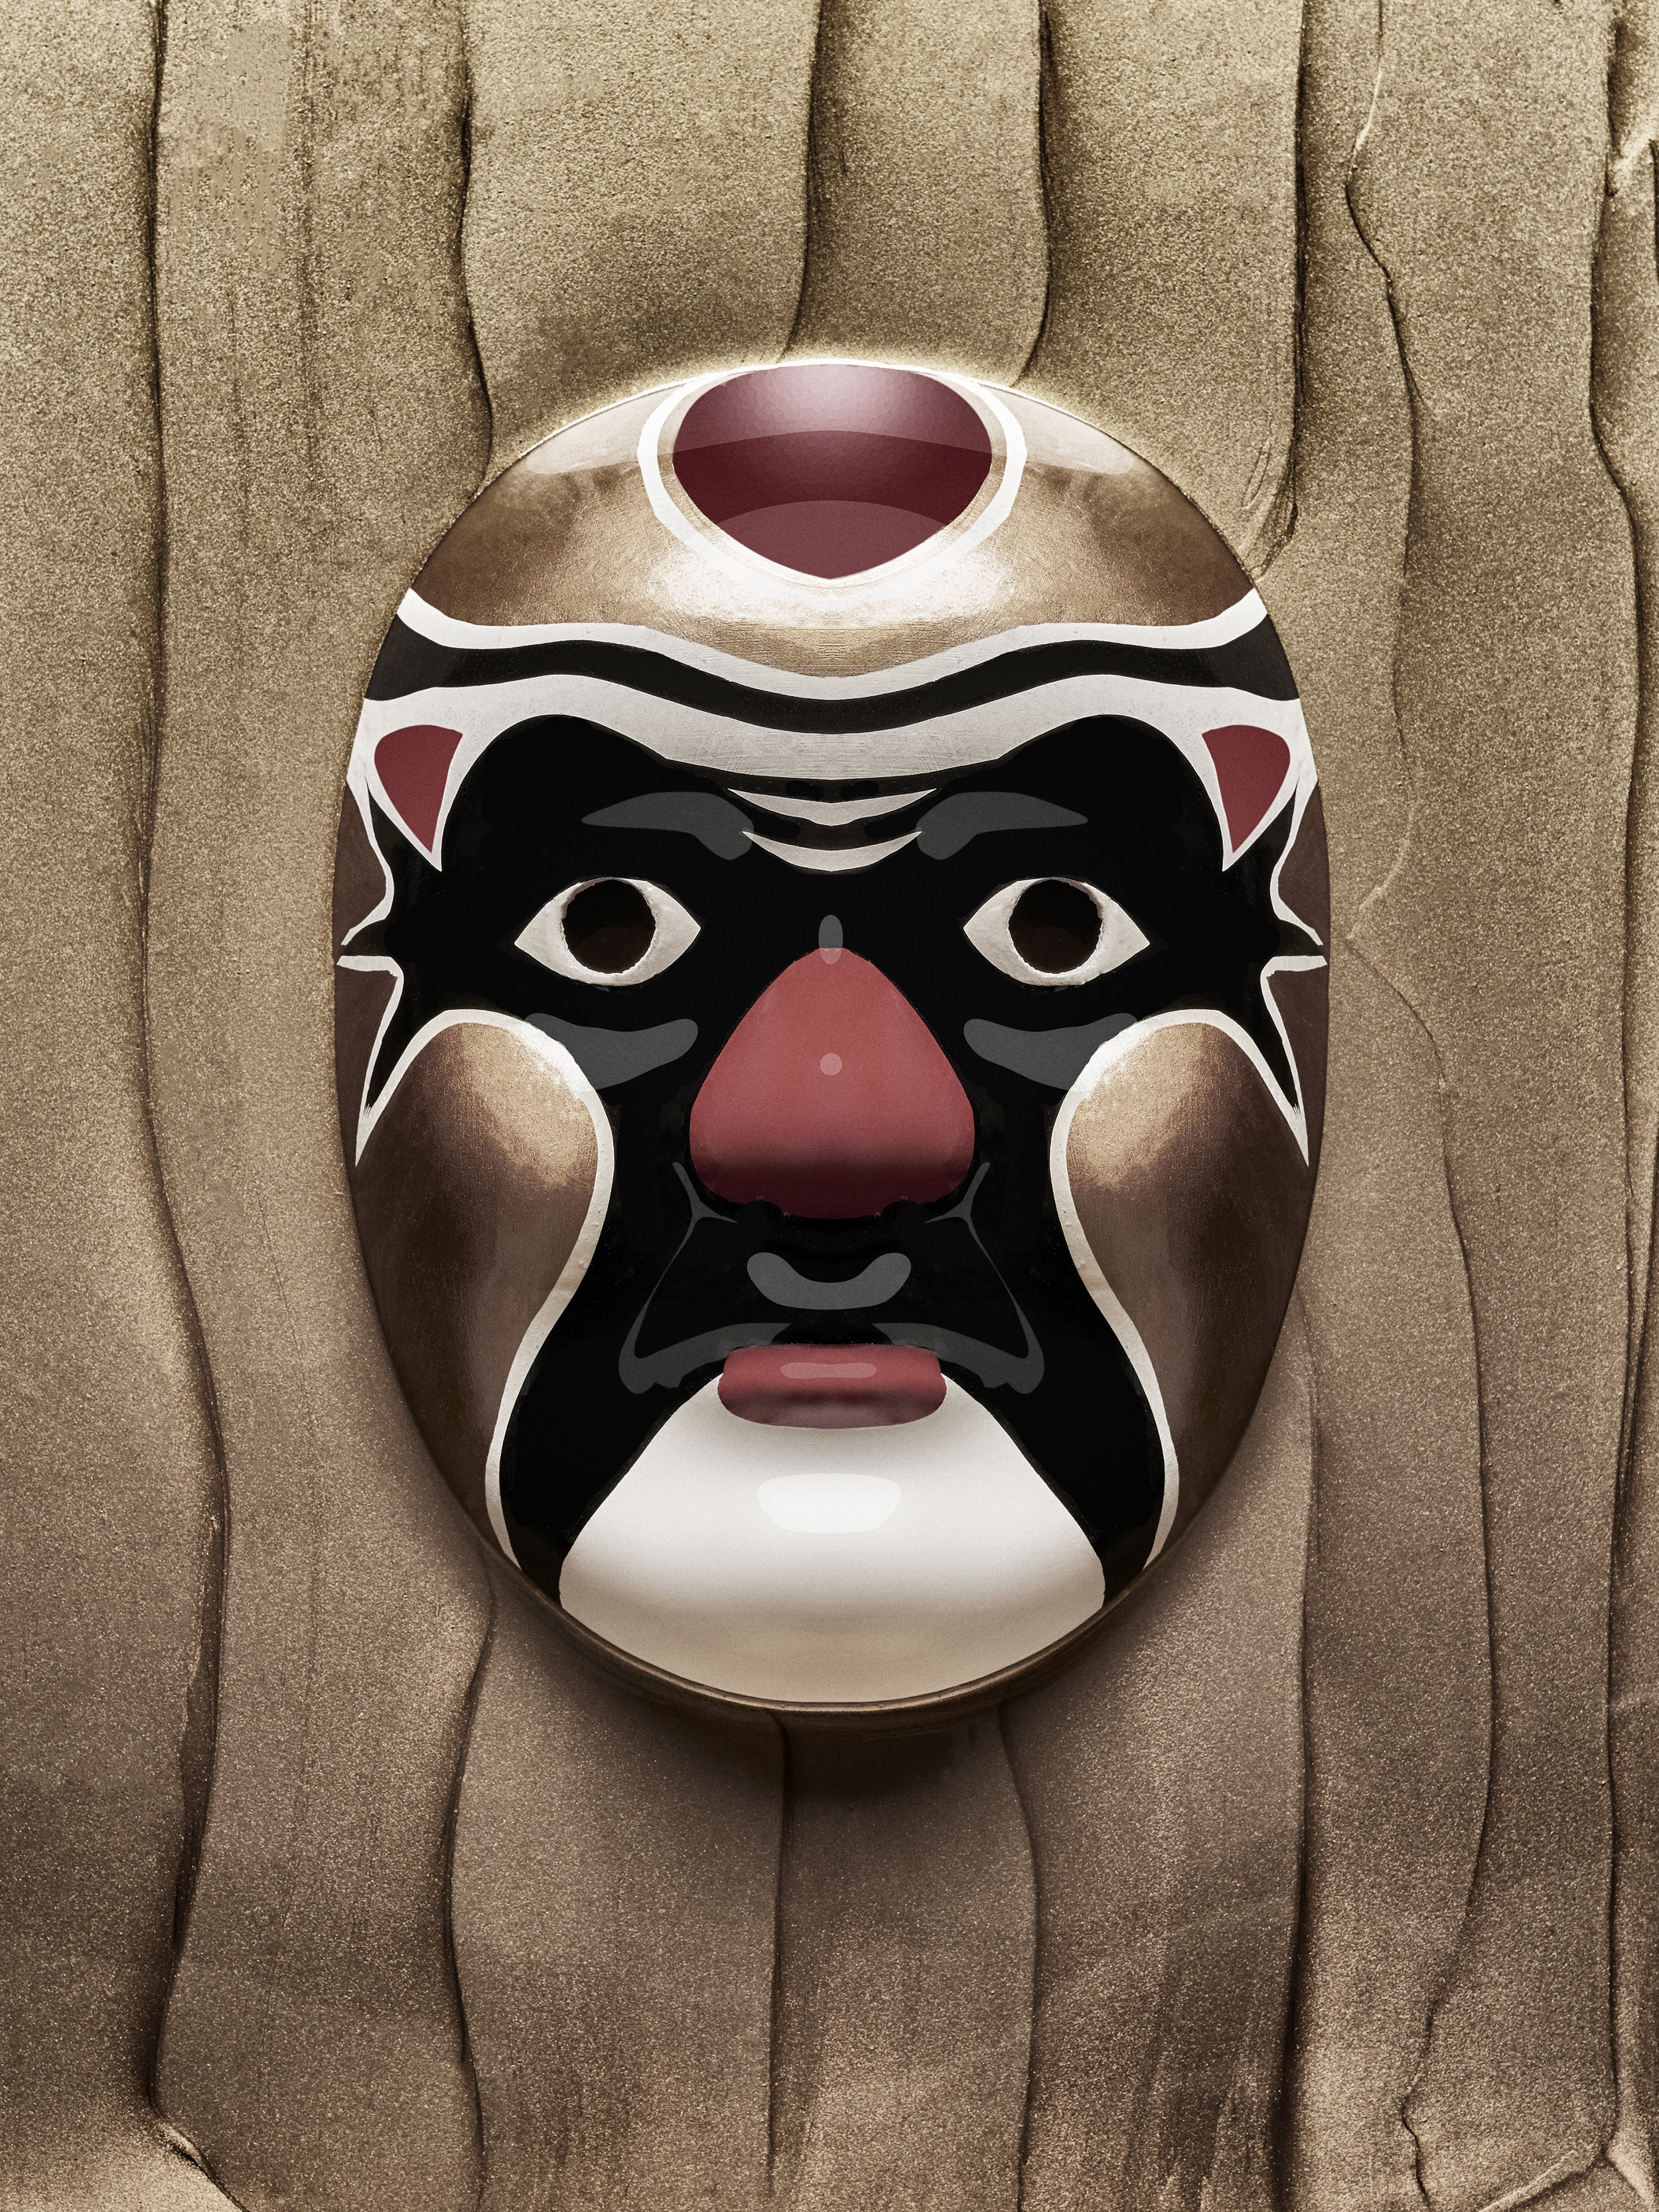 Product - 2017-06-02 Chinese Mask in Gold Paint 5728.jpg